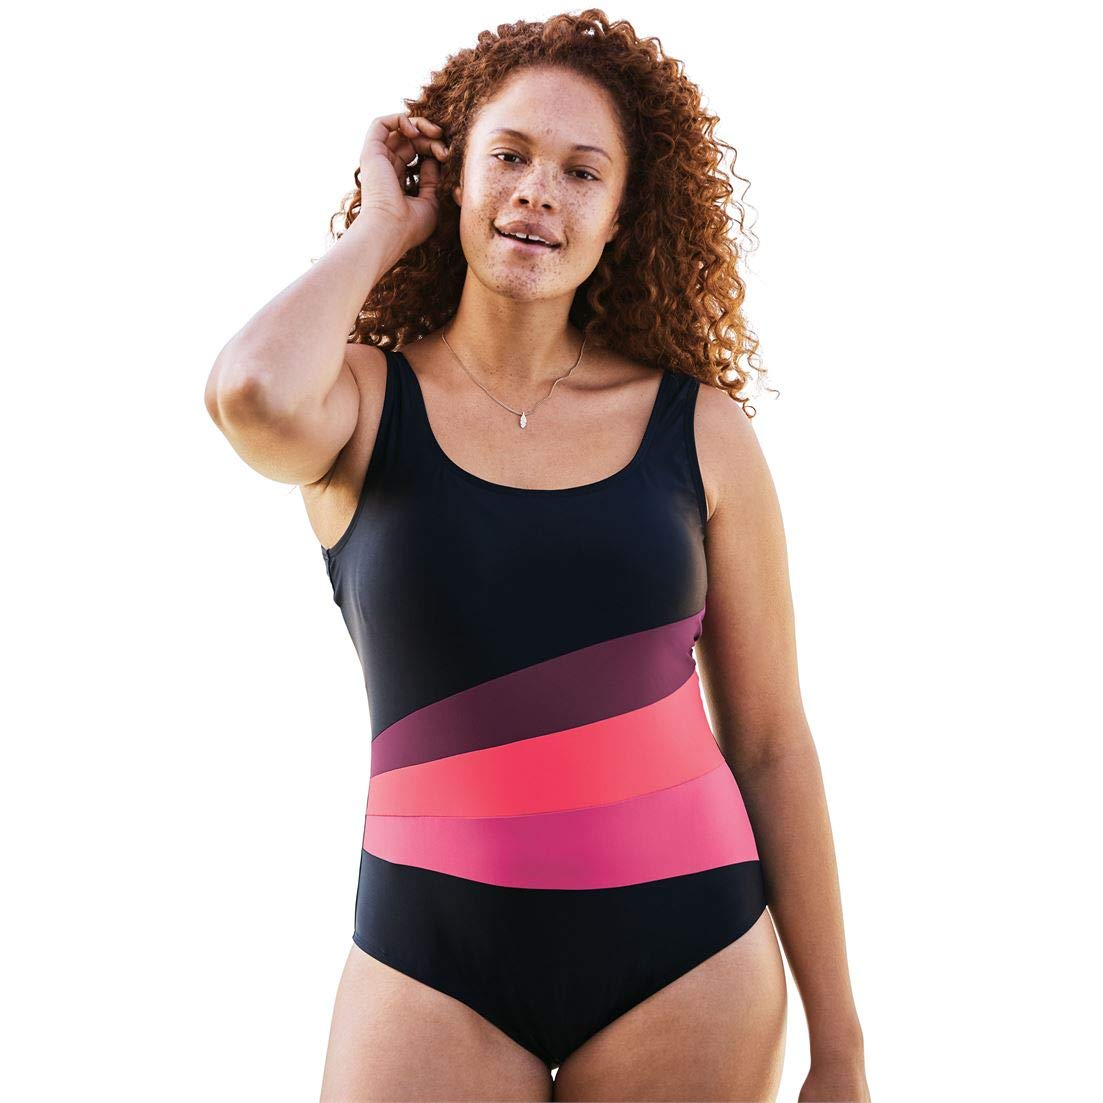 a0da04f109 Woman Within Plus Size Aquabelle Scoop Neck Maillot Swimsuit at Amazon  Women s Clothing store